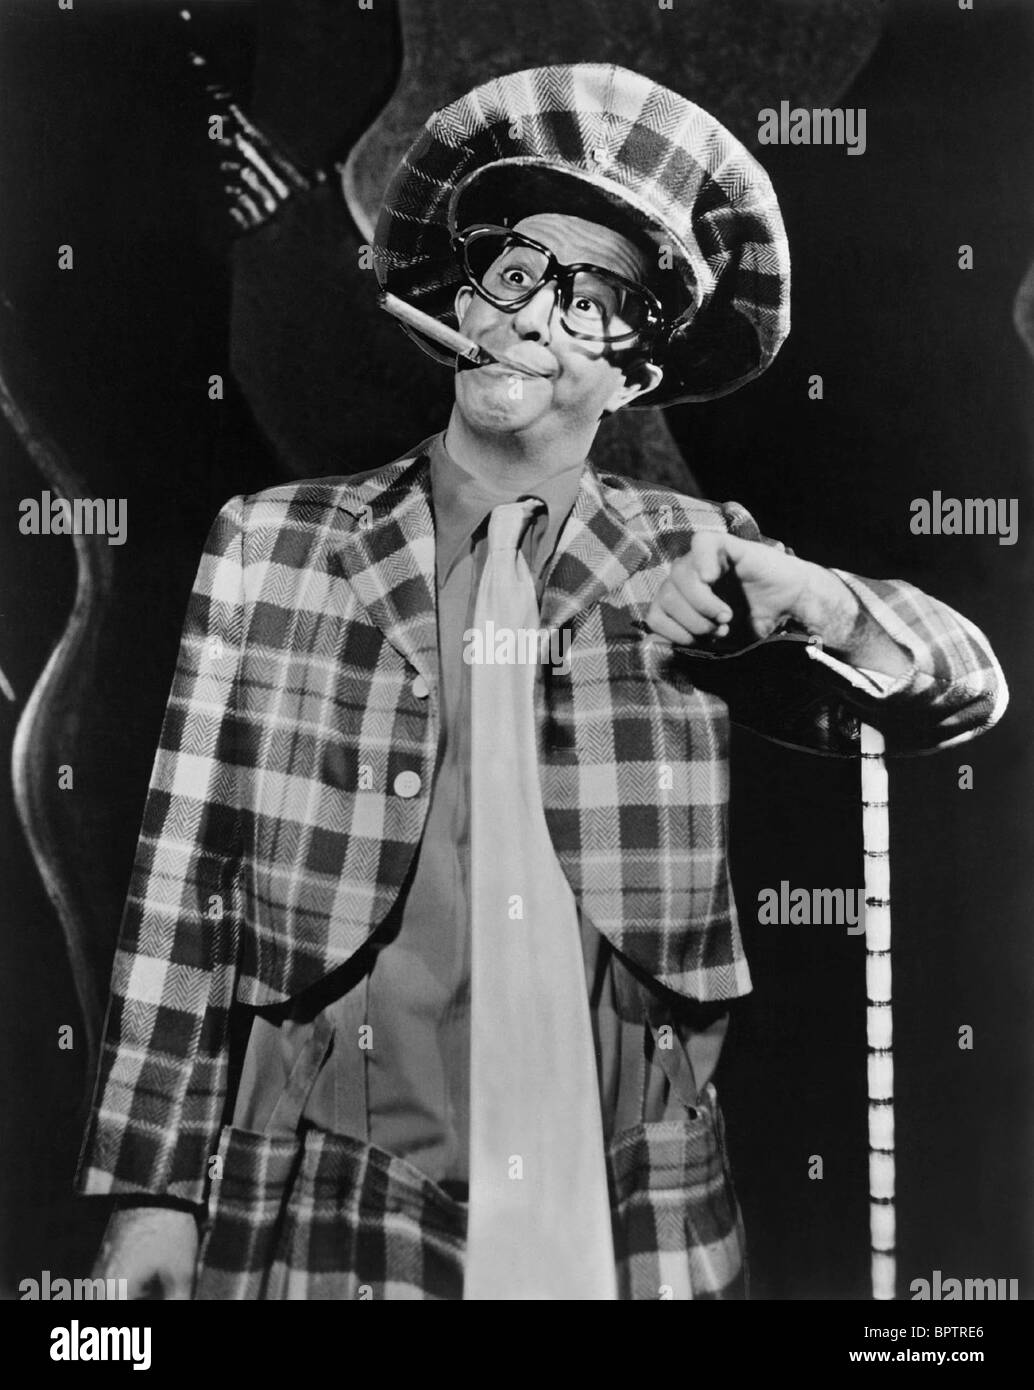 PHIL SILVERS ACTOR (1958) - Stock Image